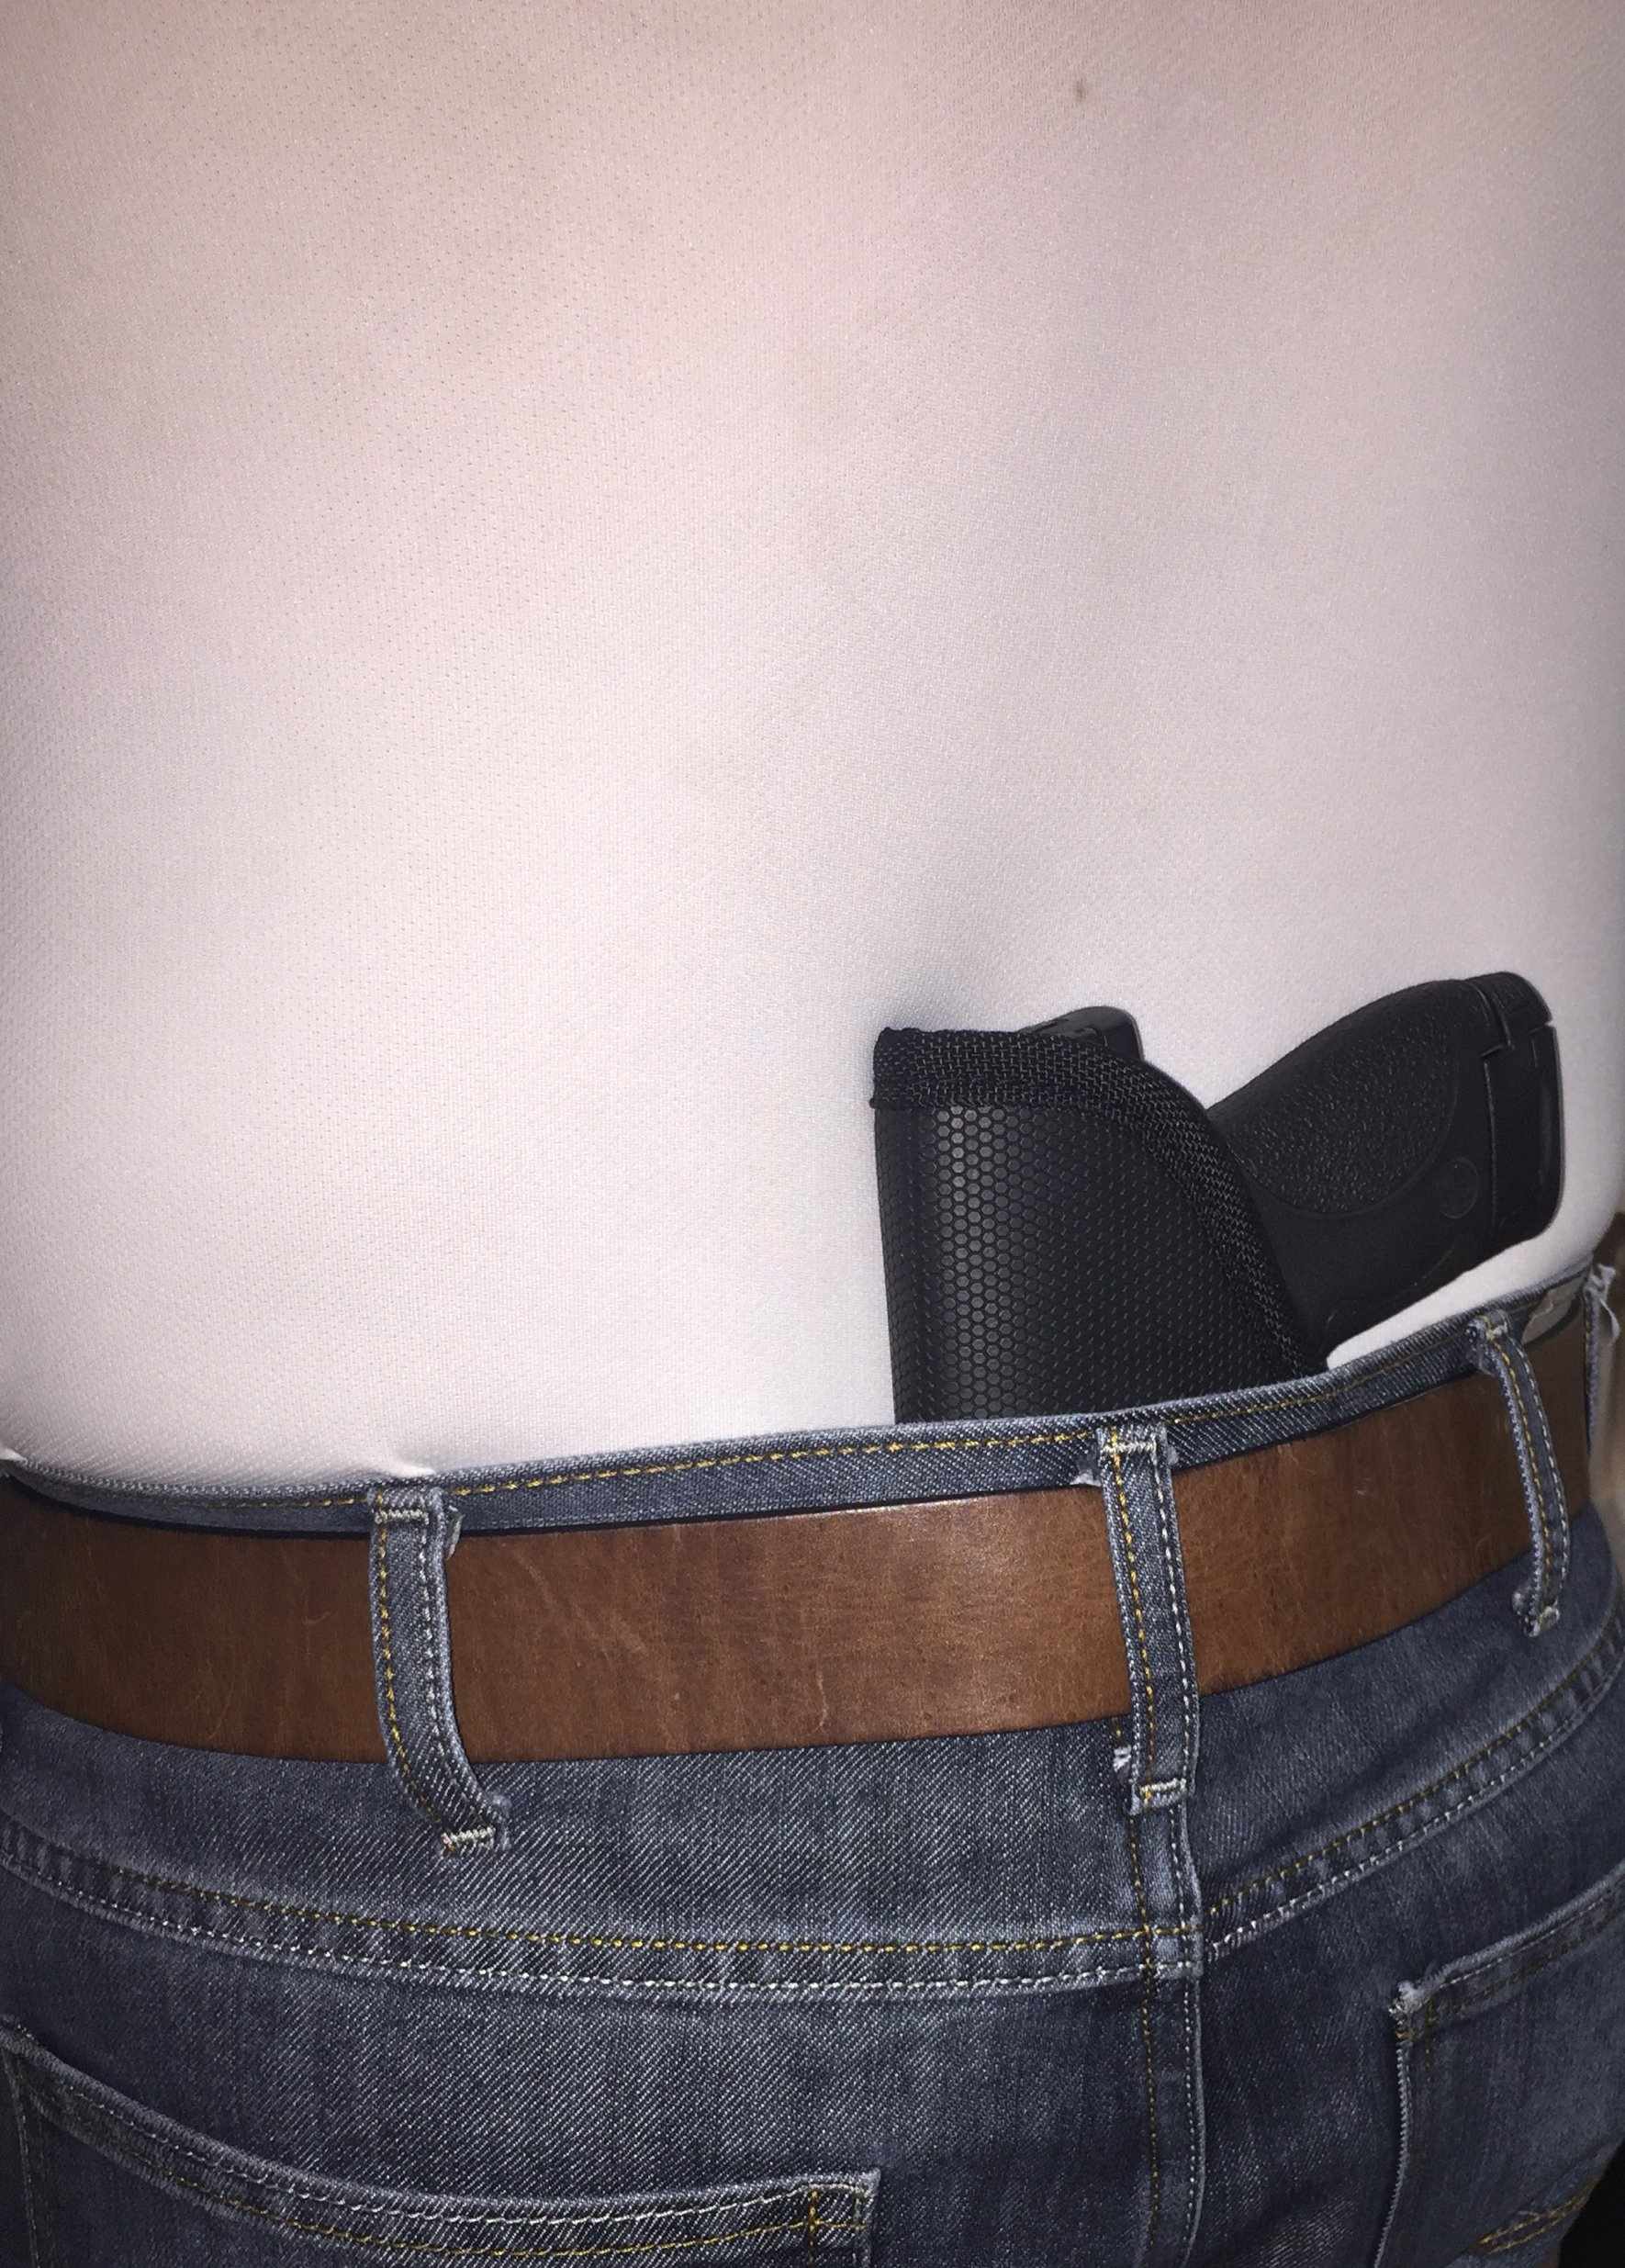 Pro-Tech Outdoors GRIPPER Concealed Inside The Paints Gun Holster For All small frame 380 by Pro-Tech Outdoors (Image #1)